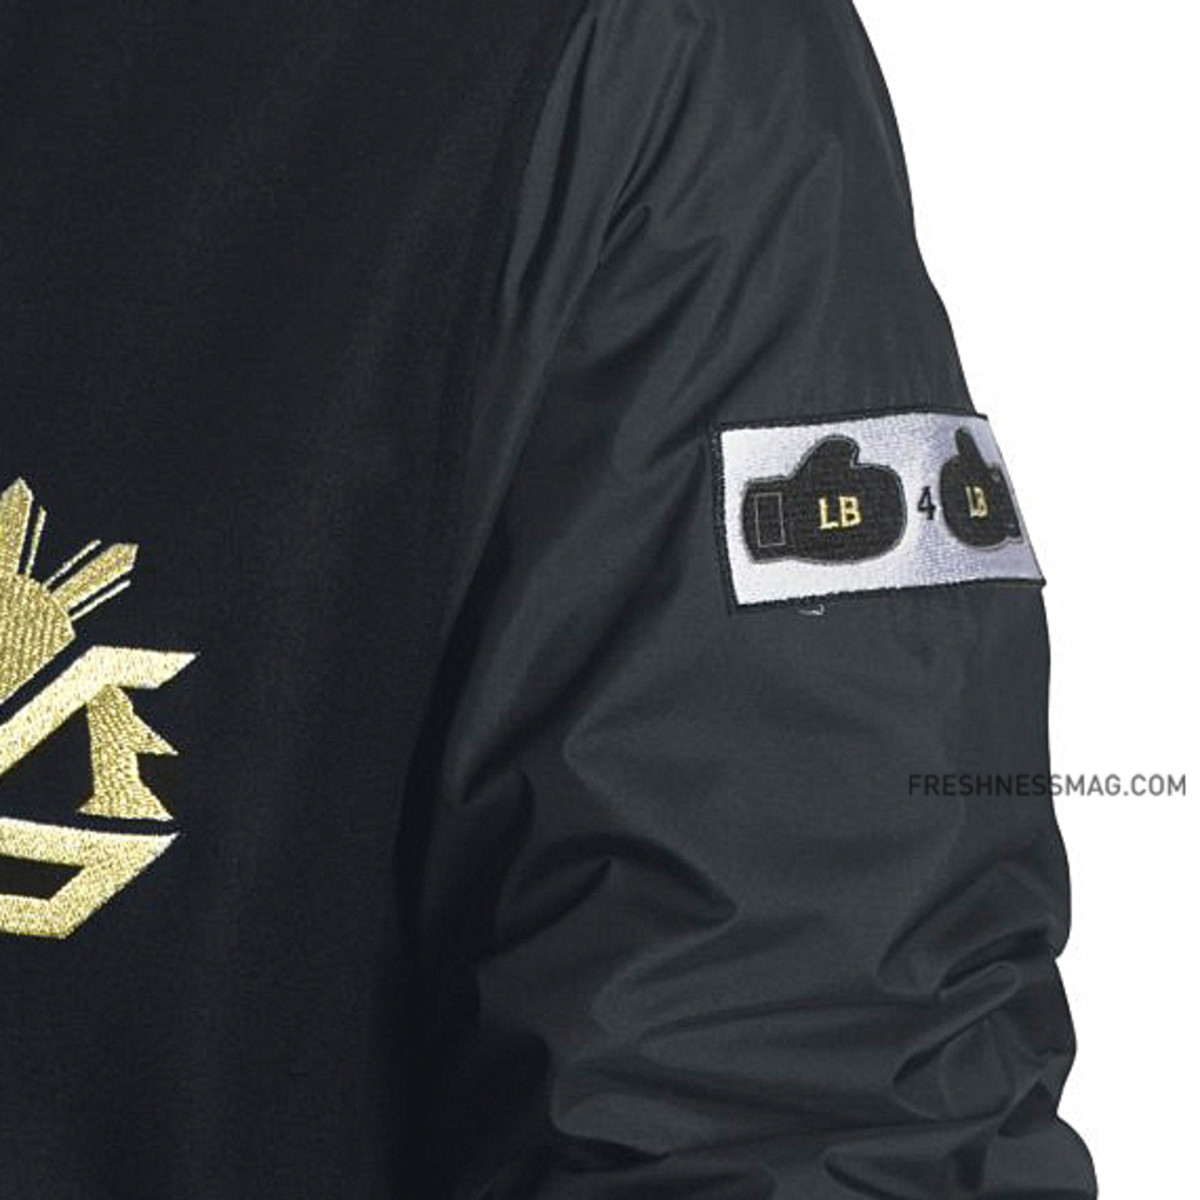 Nike-Manny-Pacquiao-Destroyer-jacket-439819-011-04